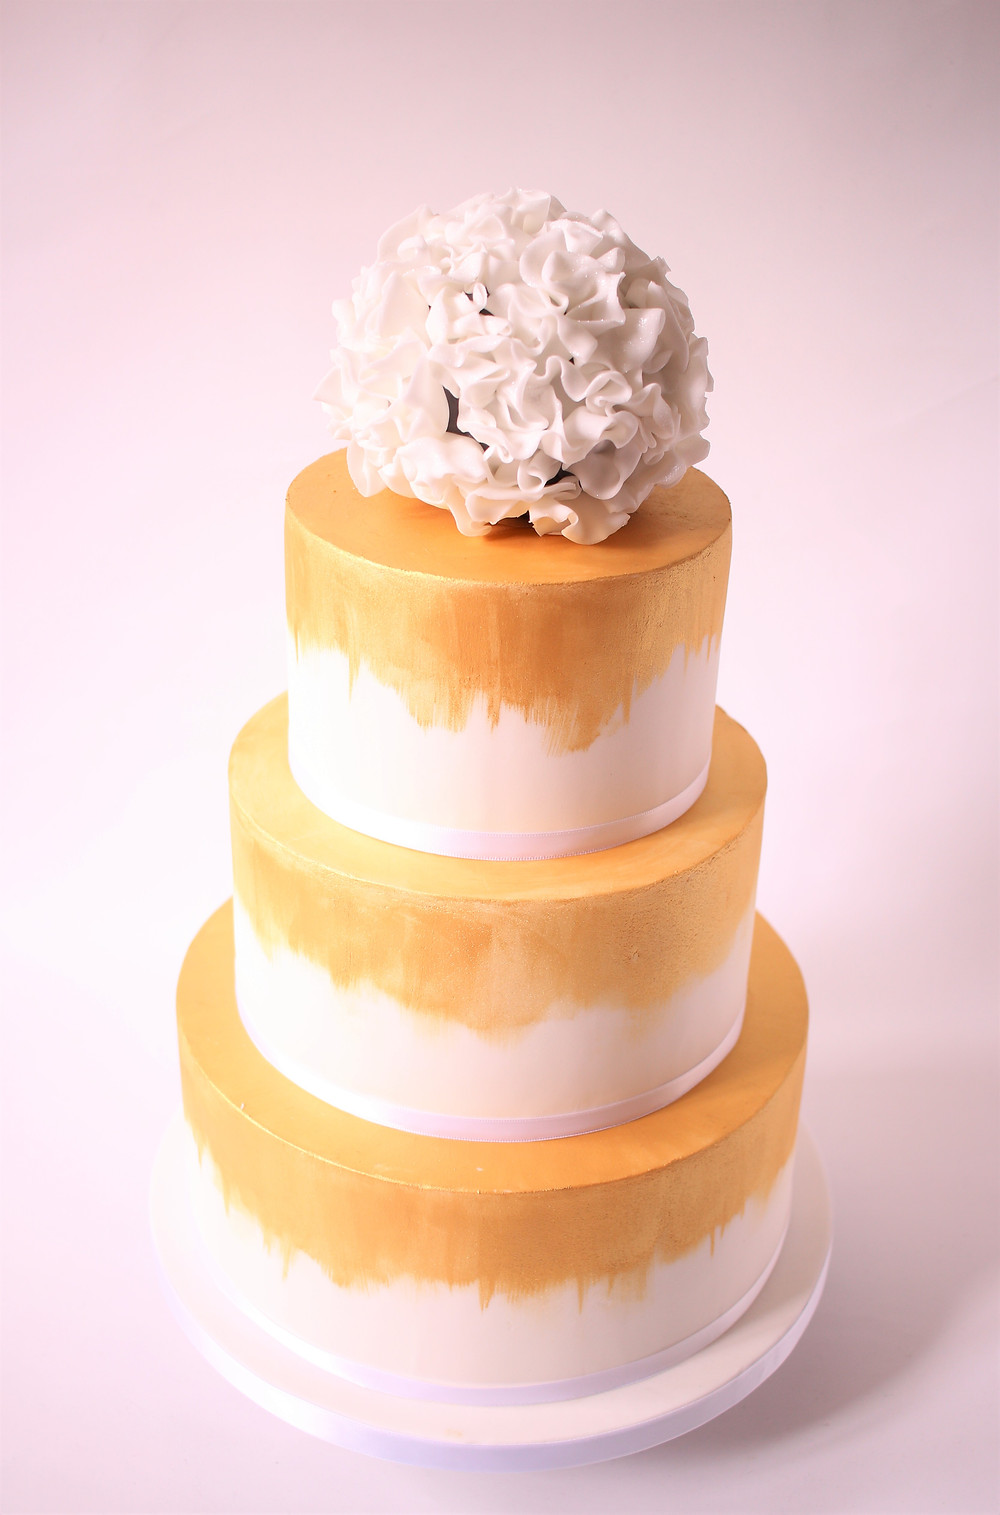 Wedding cake with edible flower ball on top